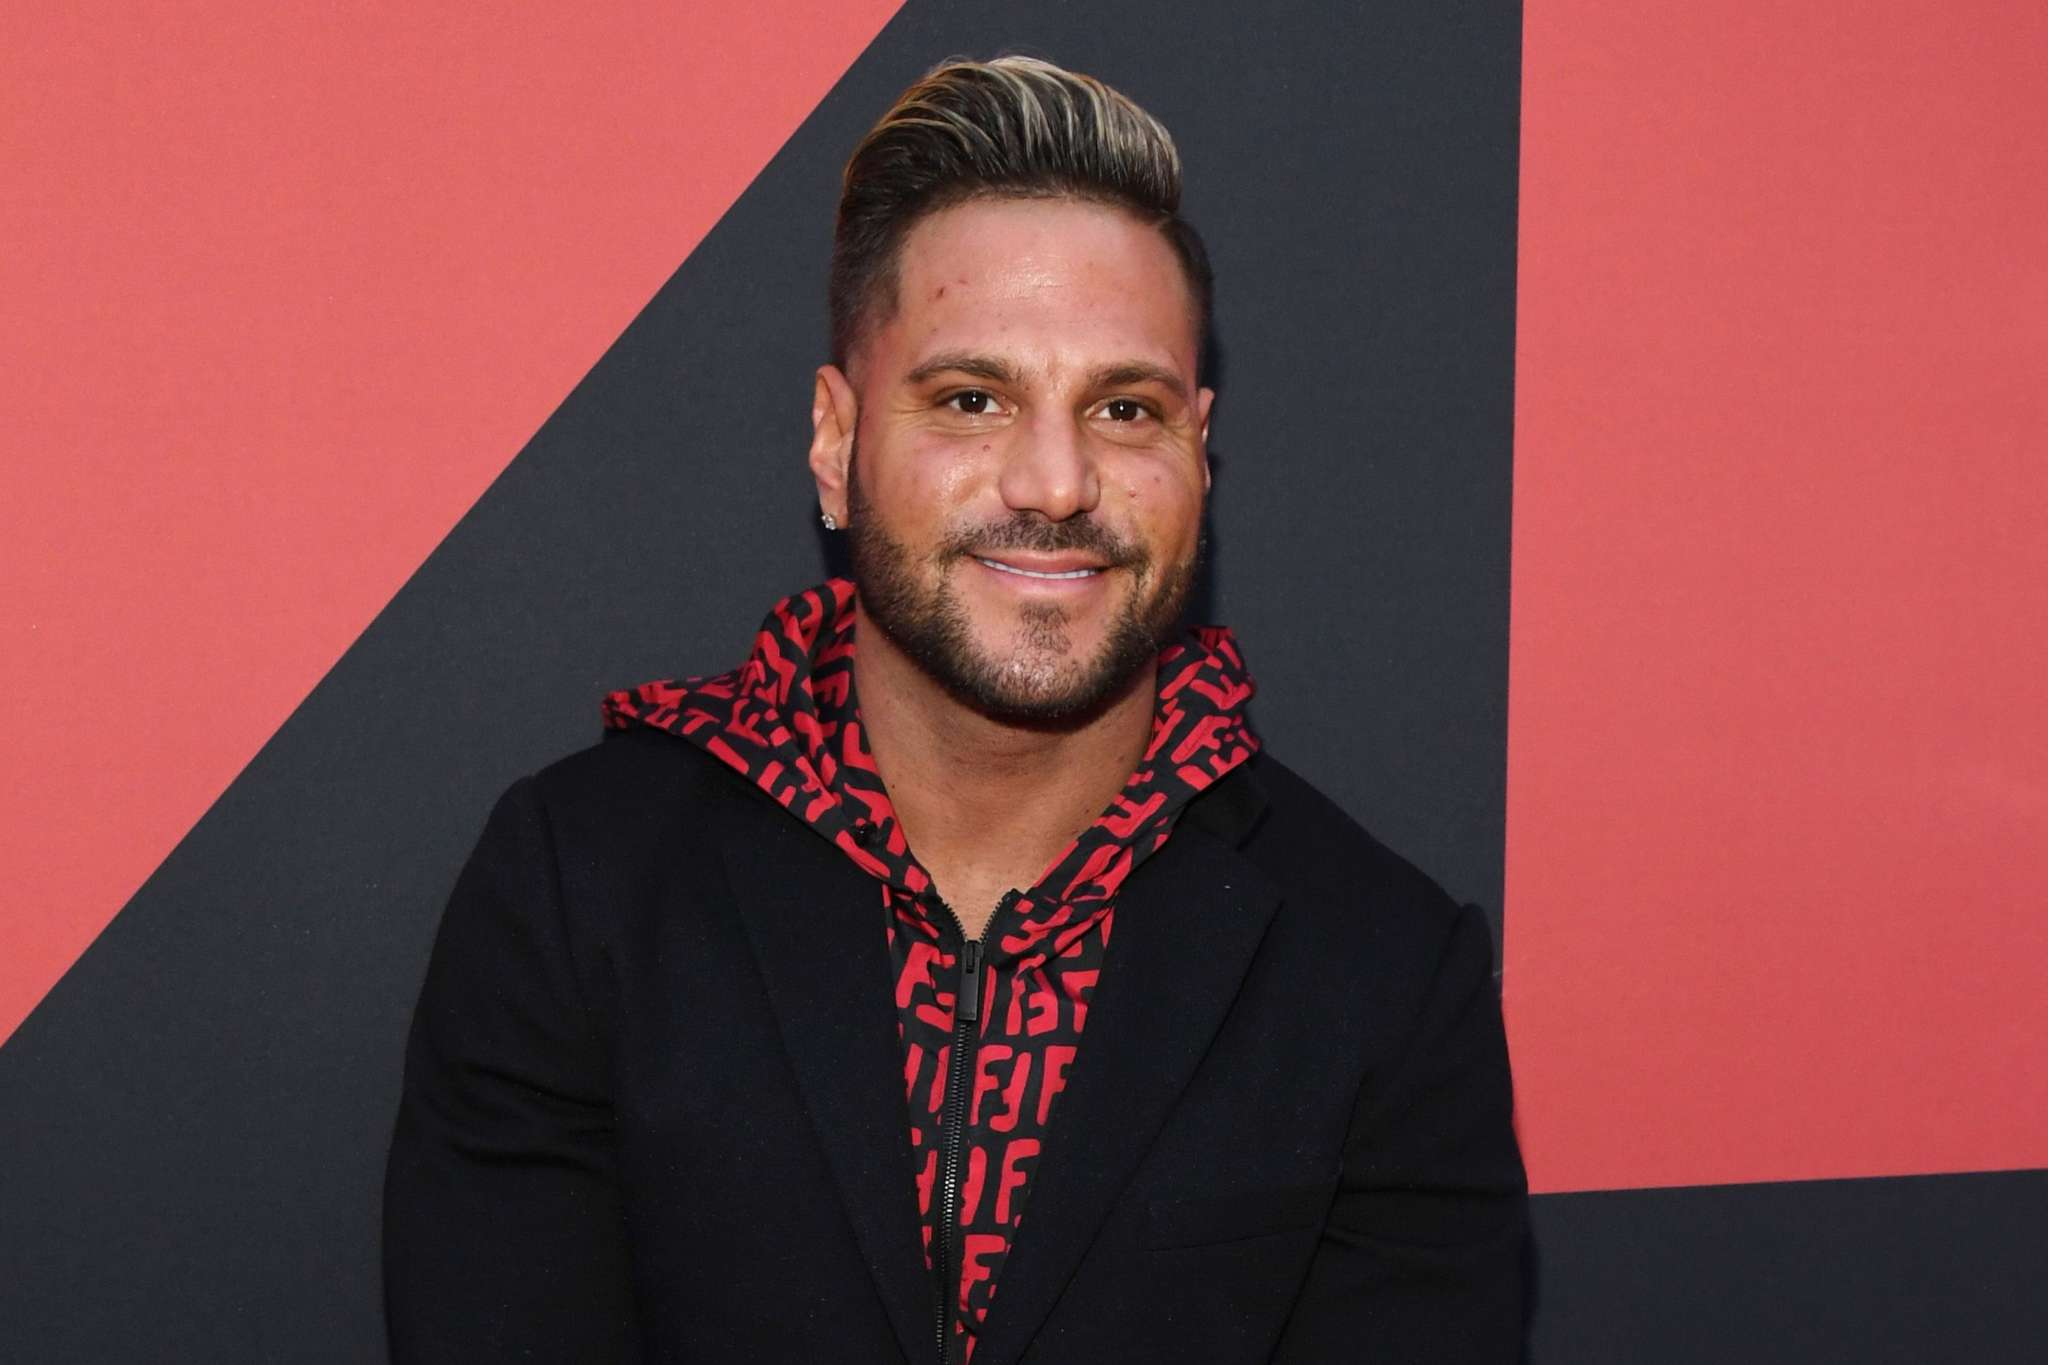 ronnie-ortiz-magro-is-marriage-with-new-gf-saffire-matos-in-his-future-plans